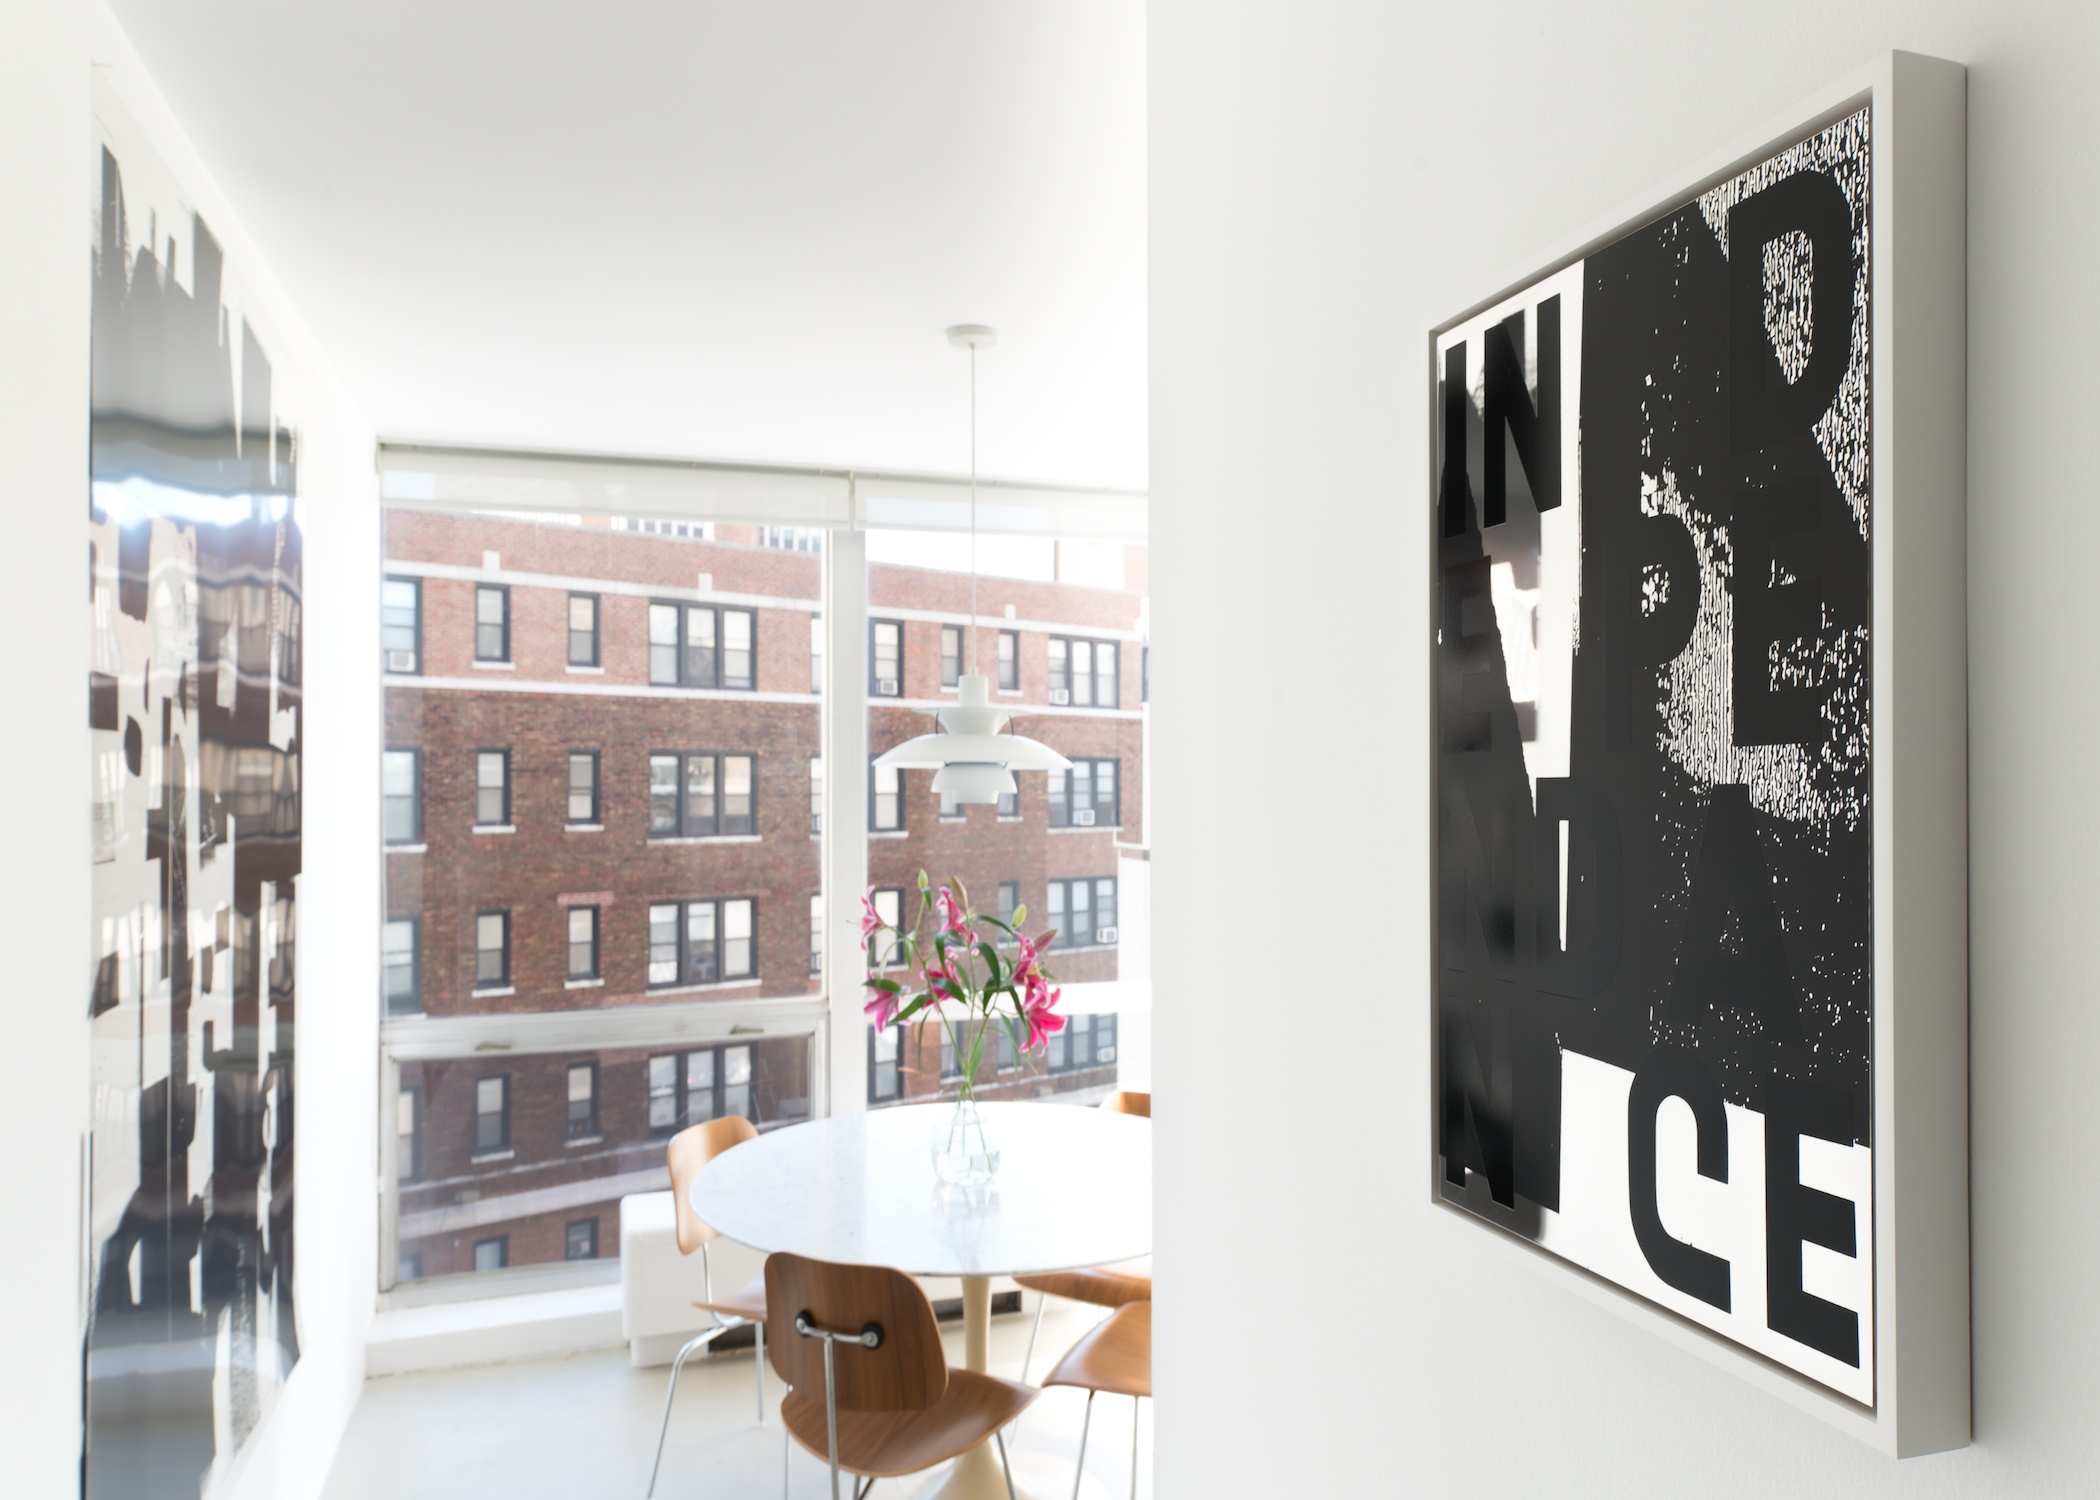 Adam Pendleton Selected Works 2014 Shane Campbell Gallery, Lincoln Park Installation View